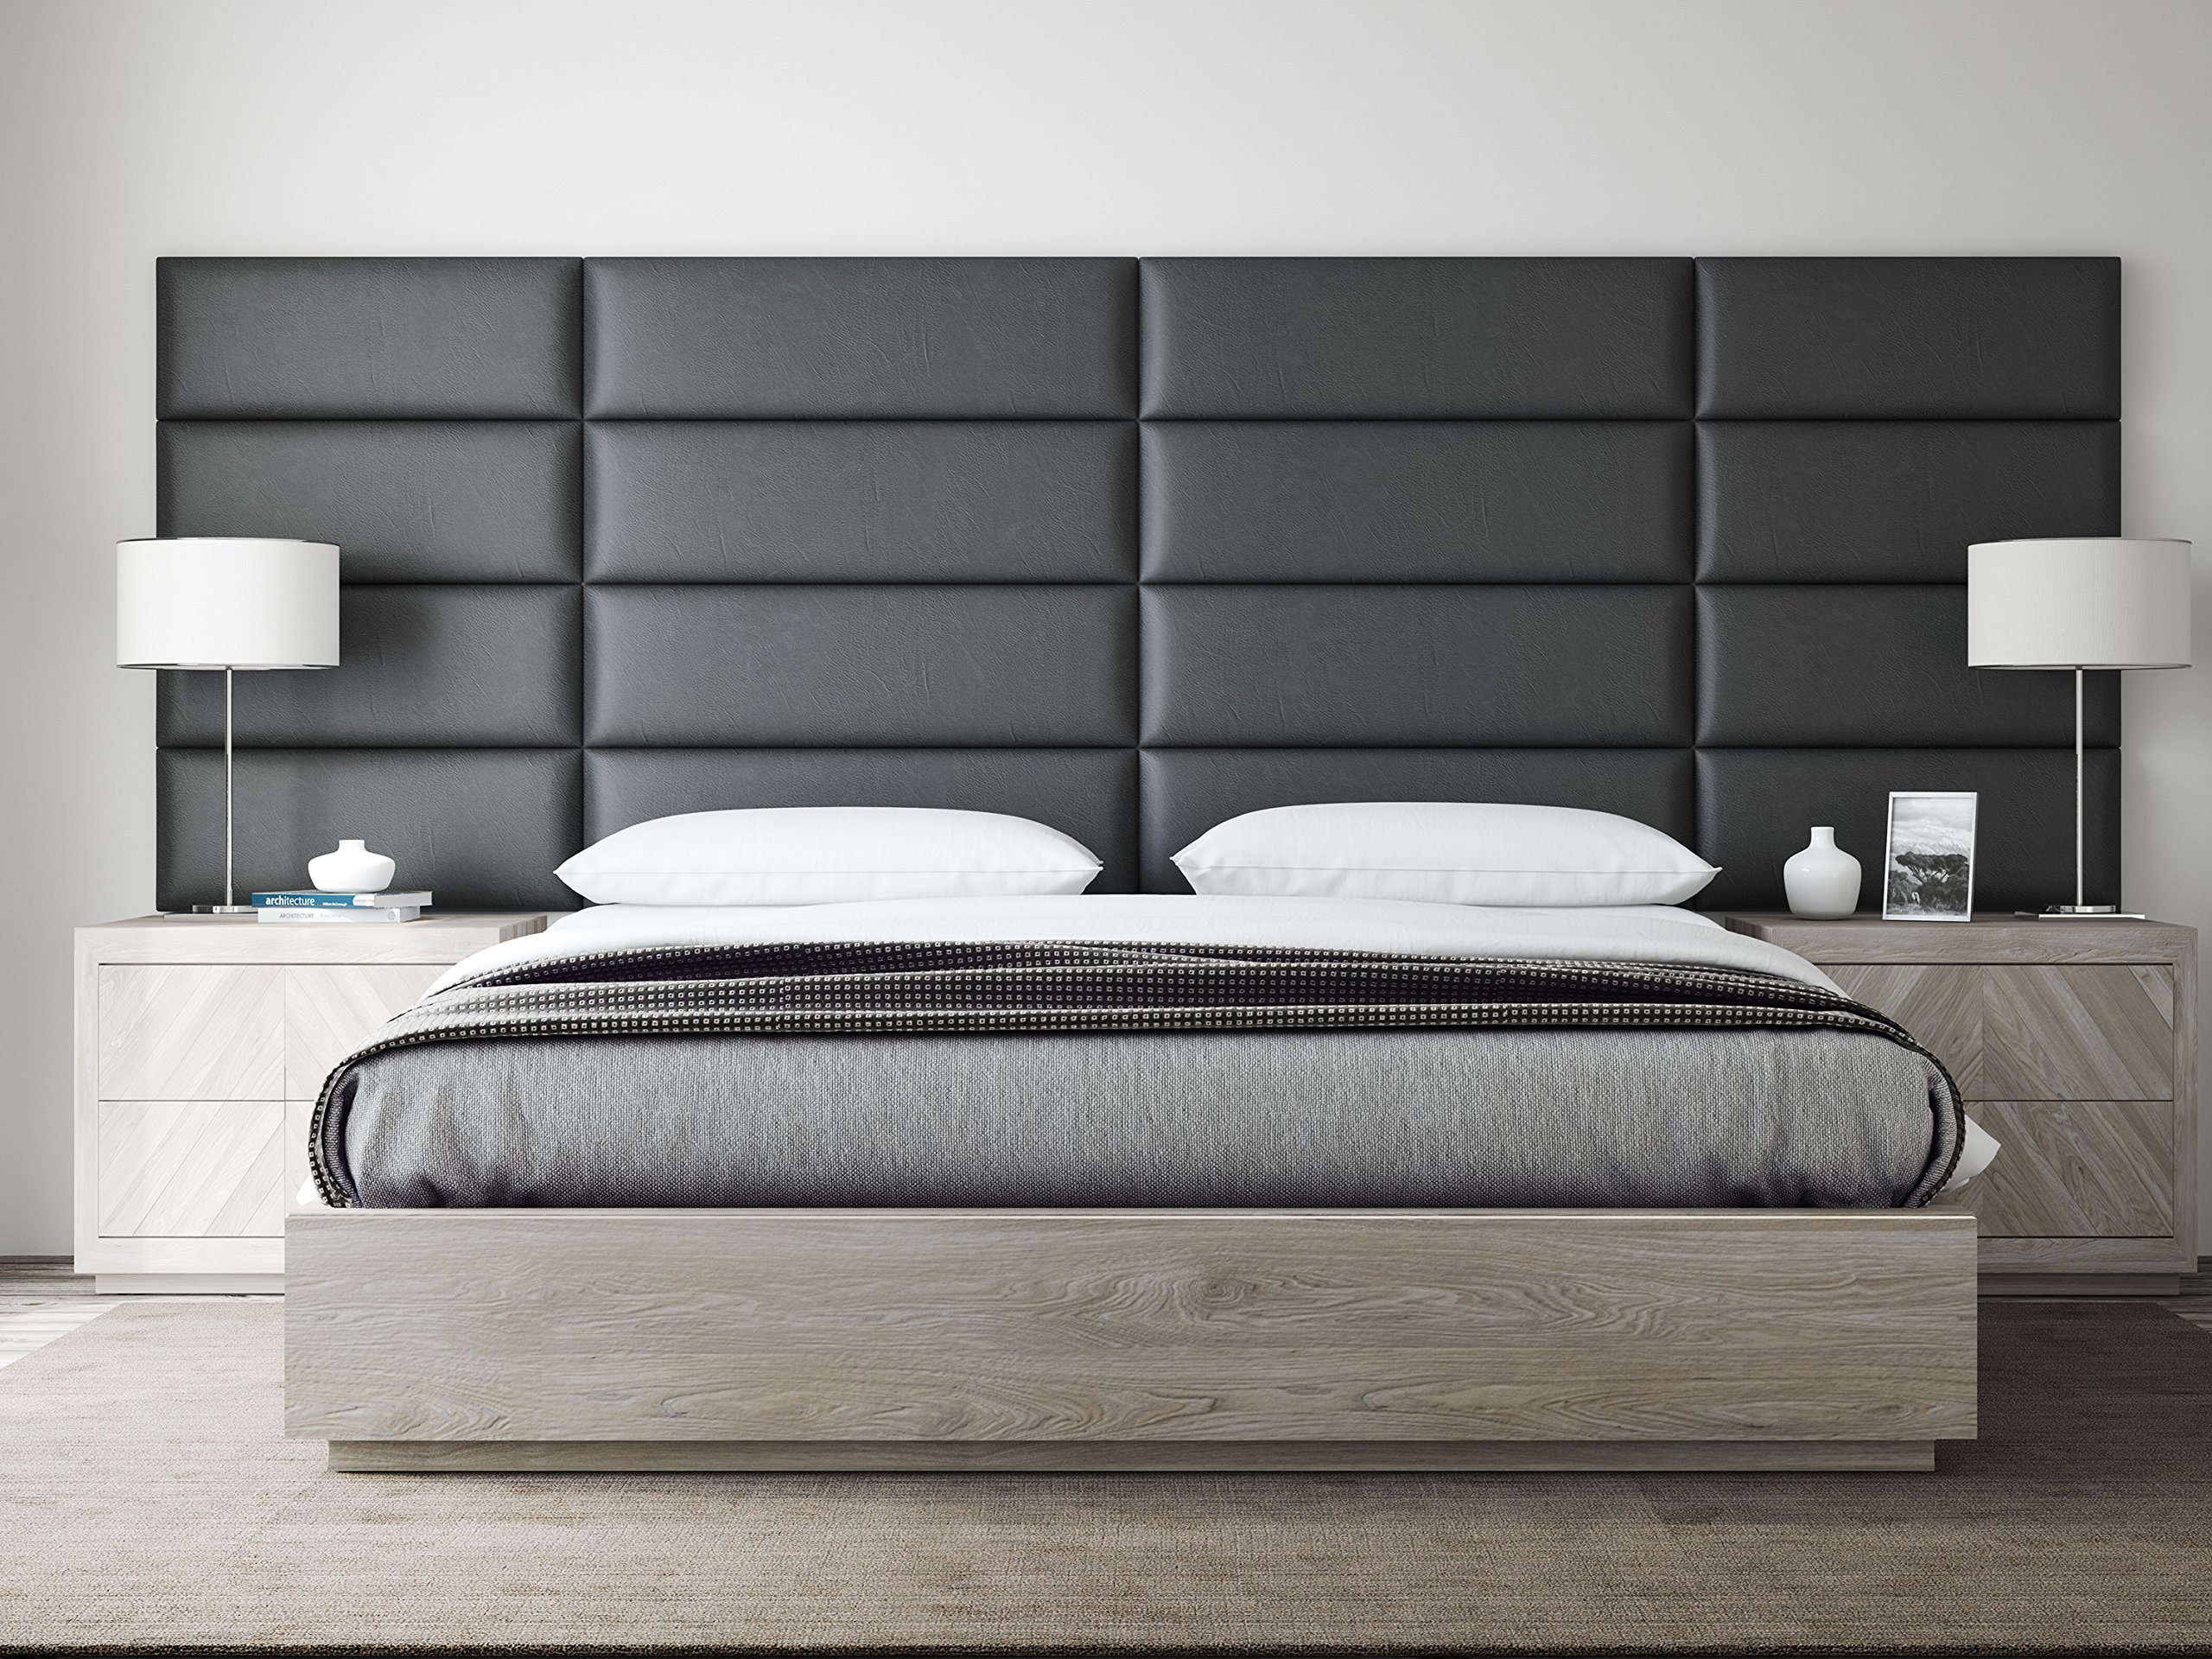 Get quotations · vant upholstered headboards accent wall panels packs of 4 vitage leather black coal